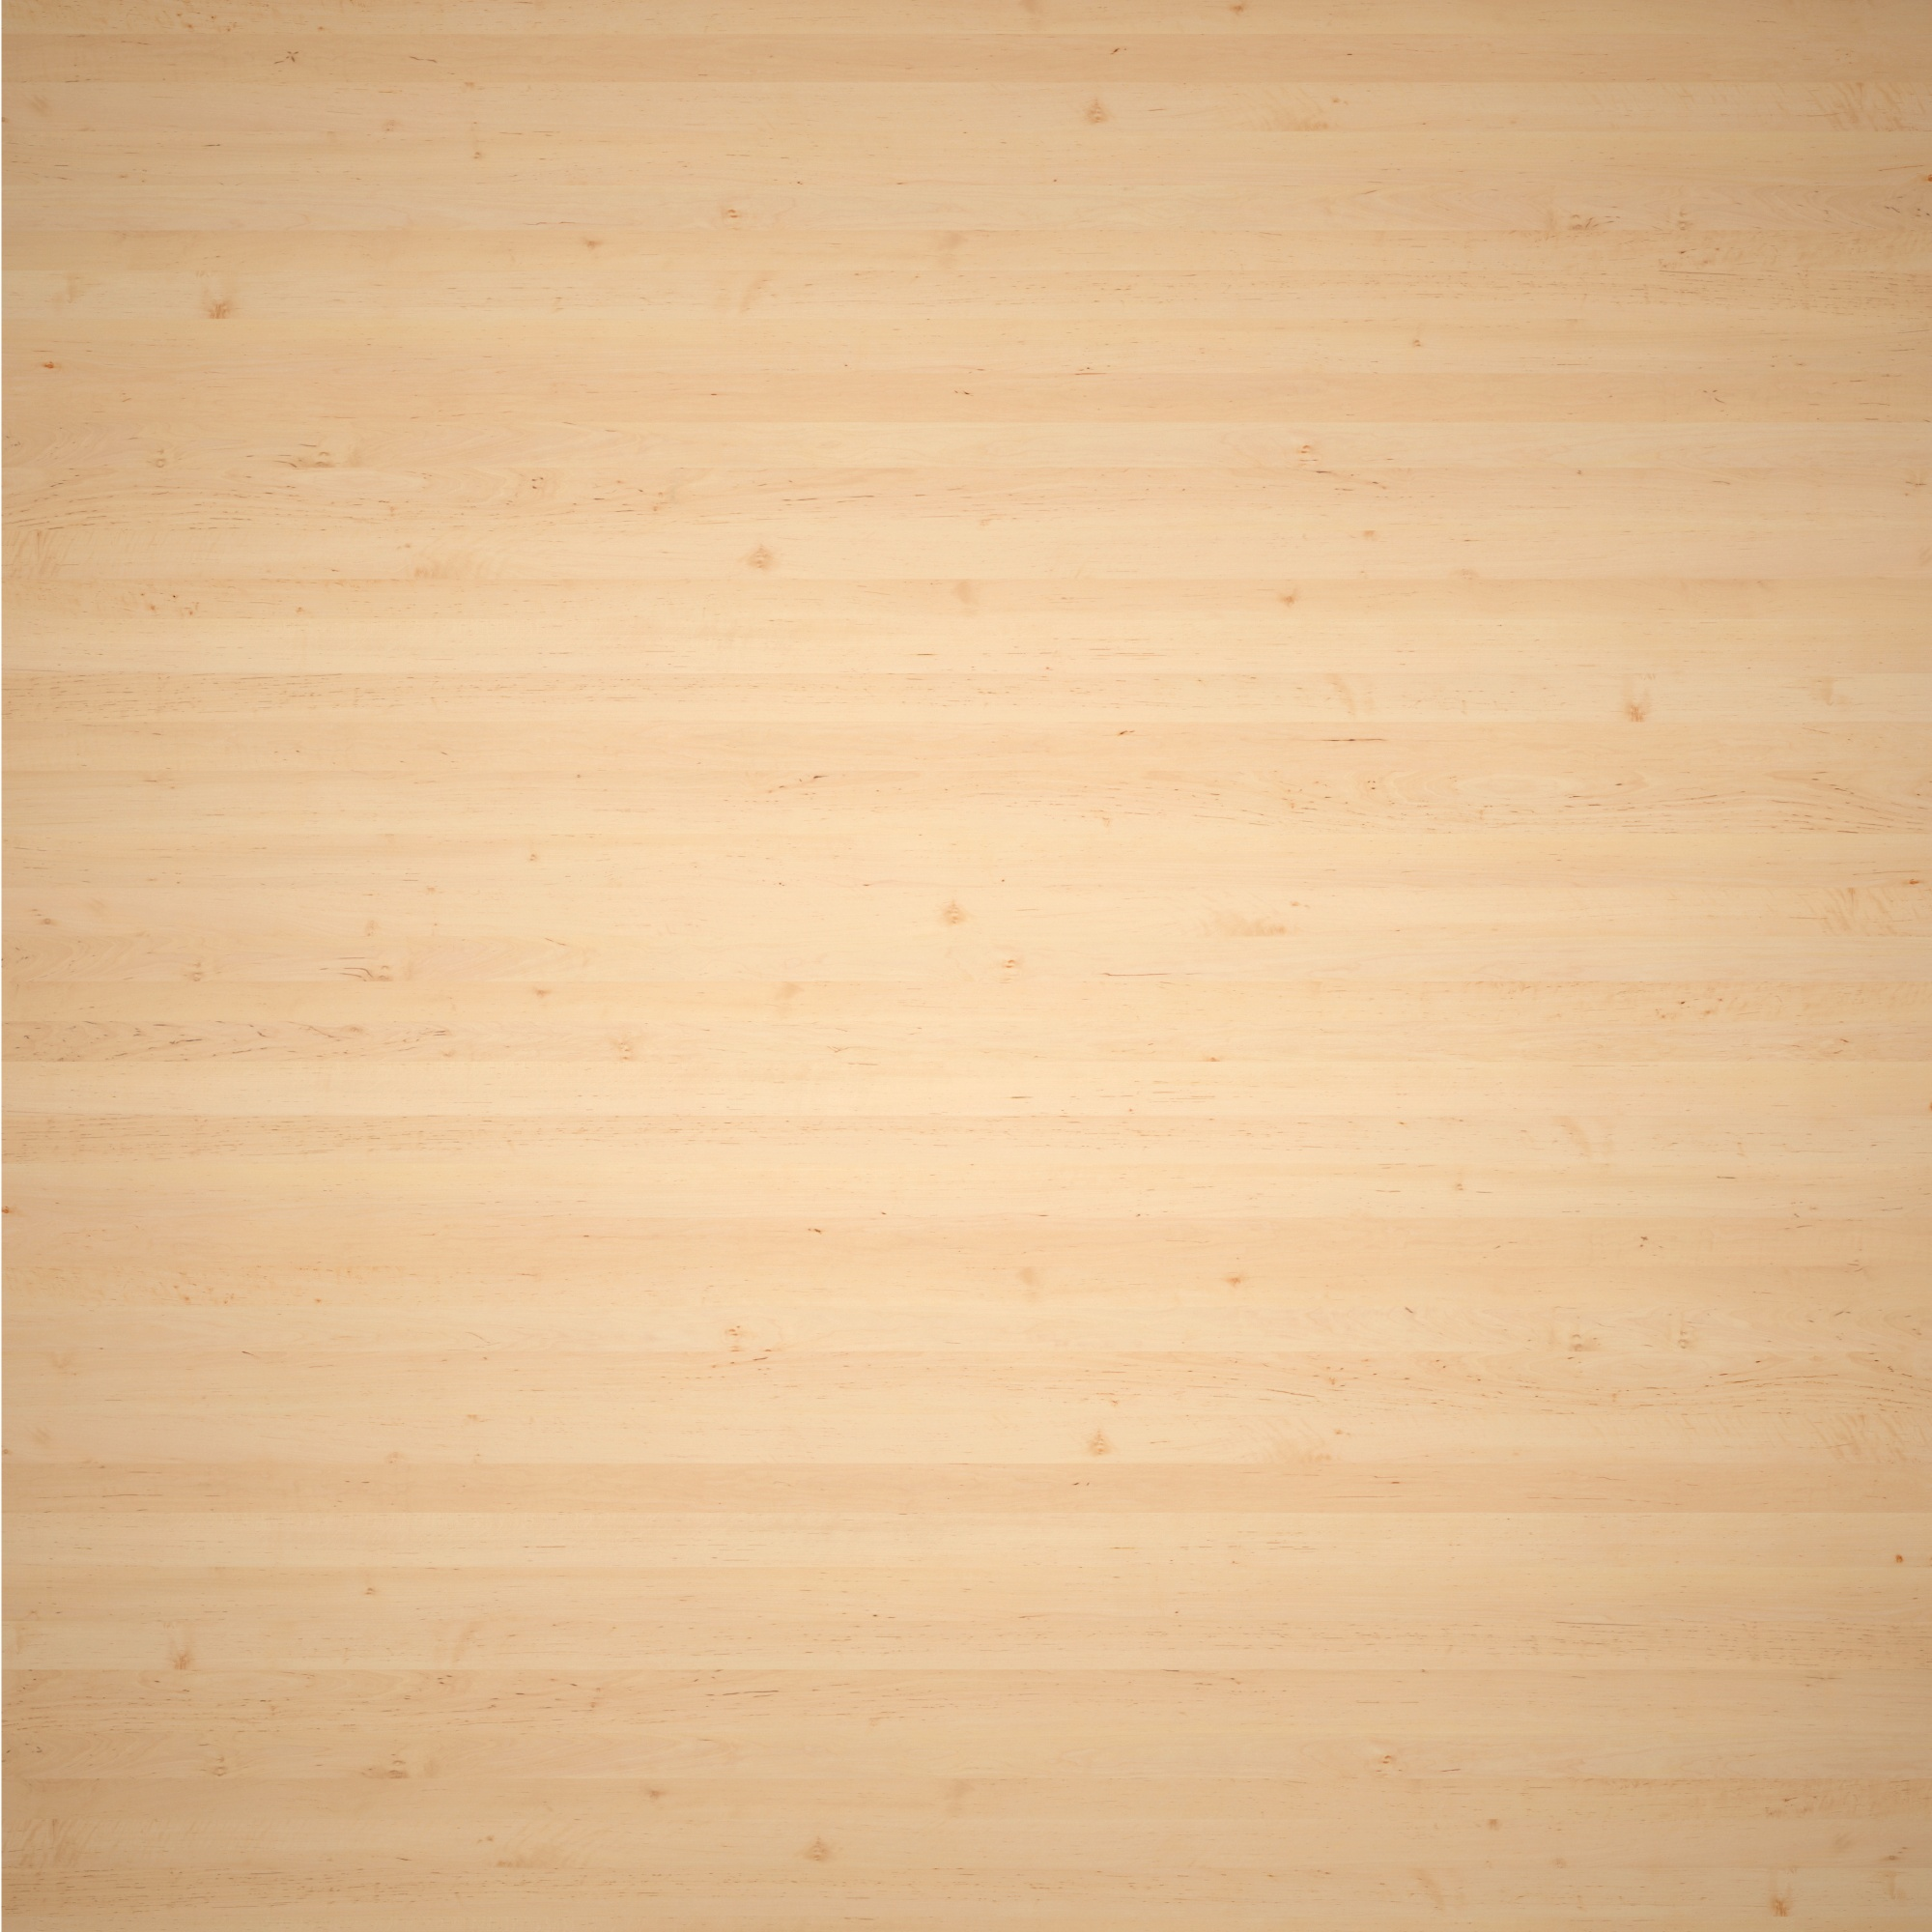 New wood texture background